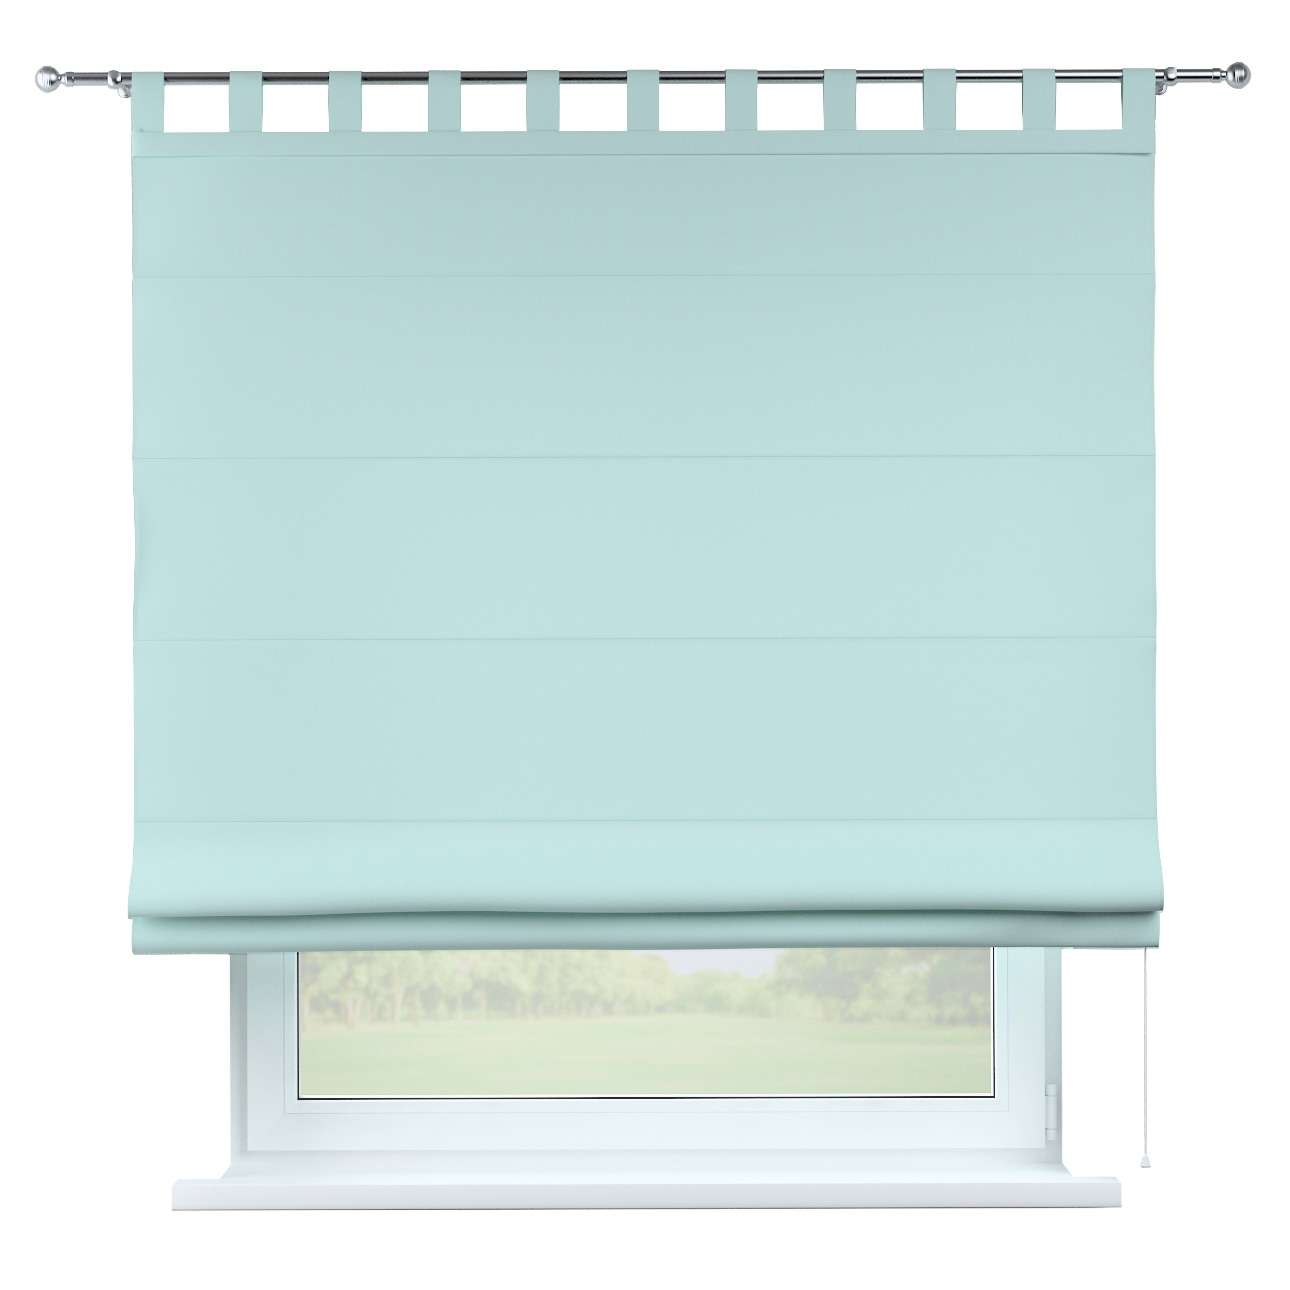 Verona tab top roman blind 80 × 170 cm (31.5 × 67 inch) in collection Panama Cotton, fabric: 702-10